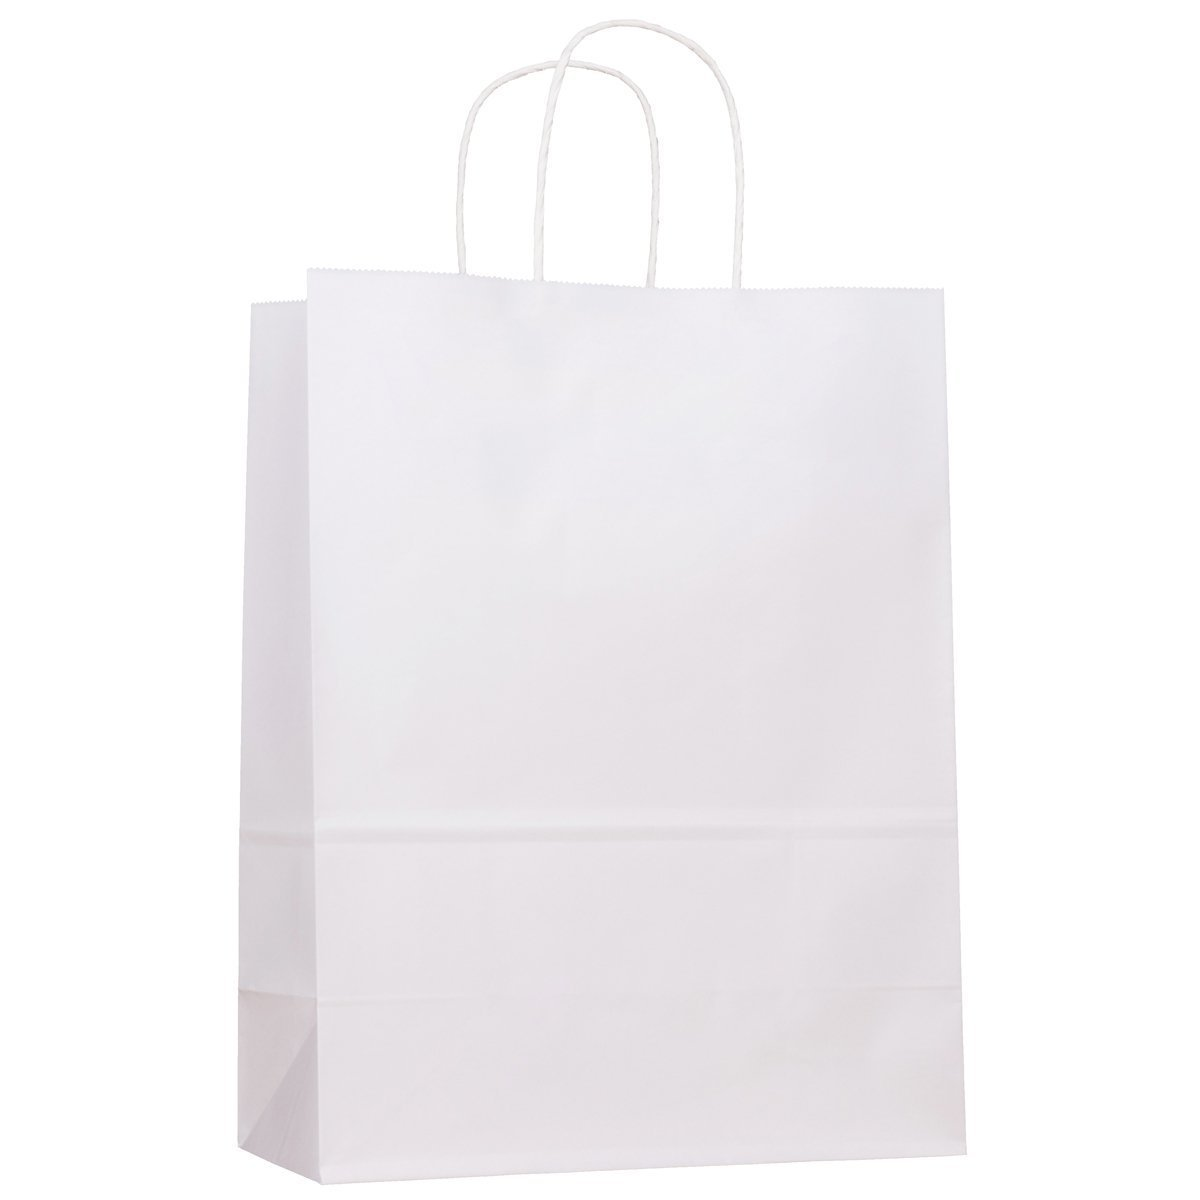 25 Packs-White Kraft Paper Gift Bags Bulk with Handles 13 X 7 X 17. Ideal for Shopping, Packaging, Retail, Party, Craft, Gifts, Wedding, Recycled, Business, Goody and Merchandise Bag (White, 25 Bags)